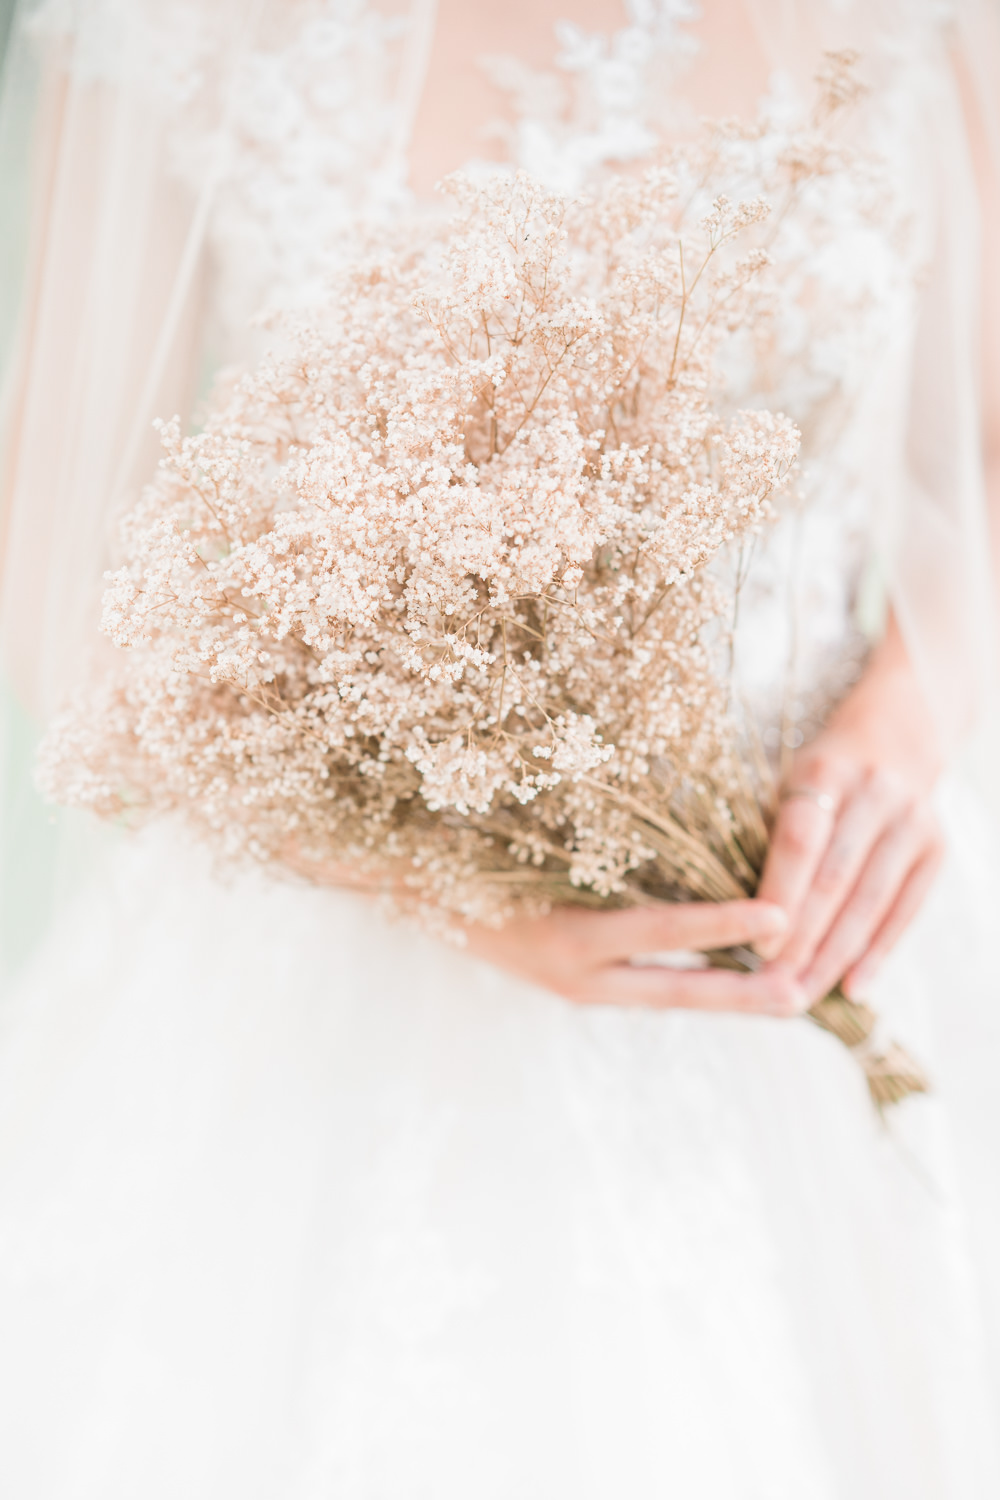 Bouquet Flowers Bride Bridal Dried Seed Grass Golden Autumnal Wedding Ideas Joanna Briggs Photography